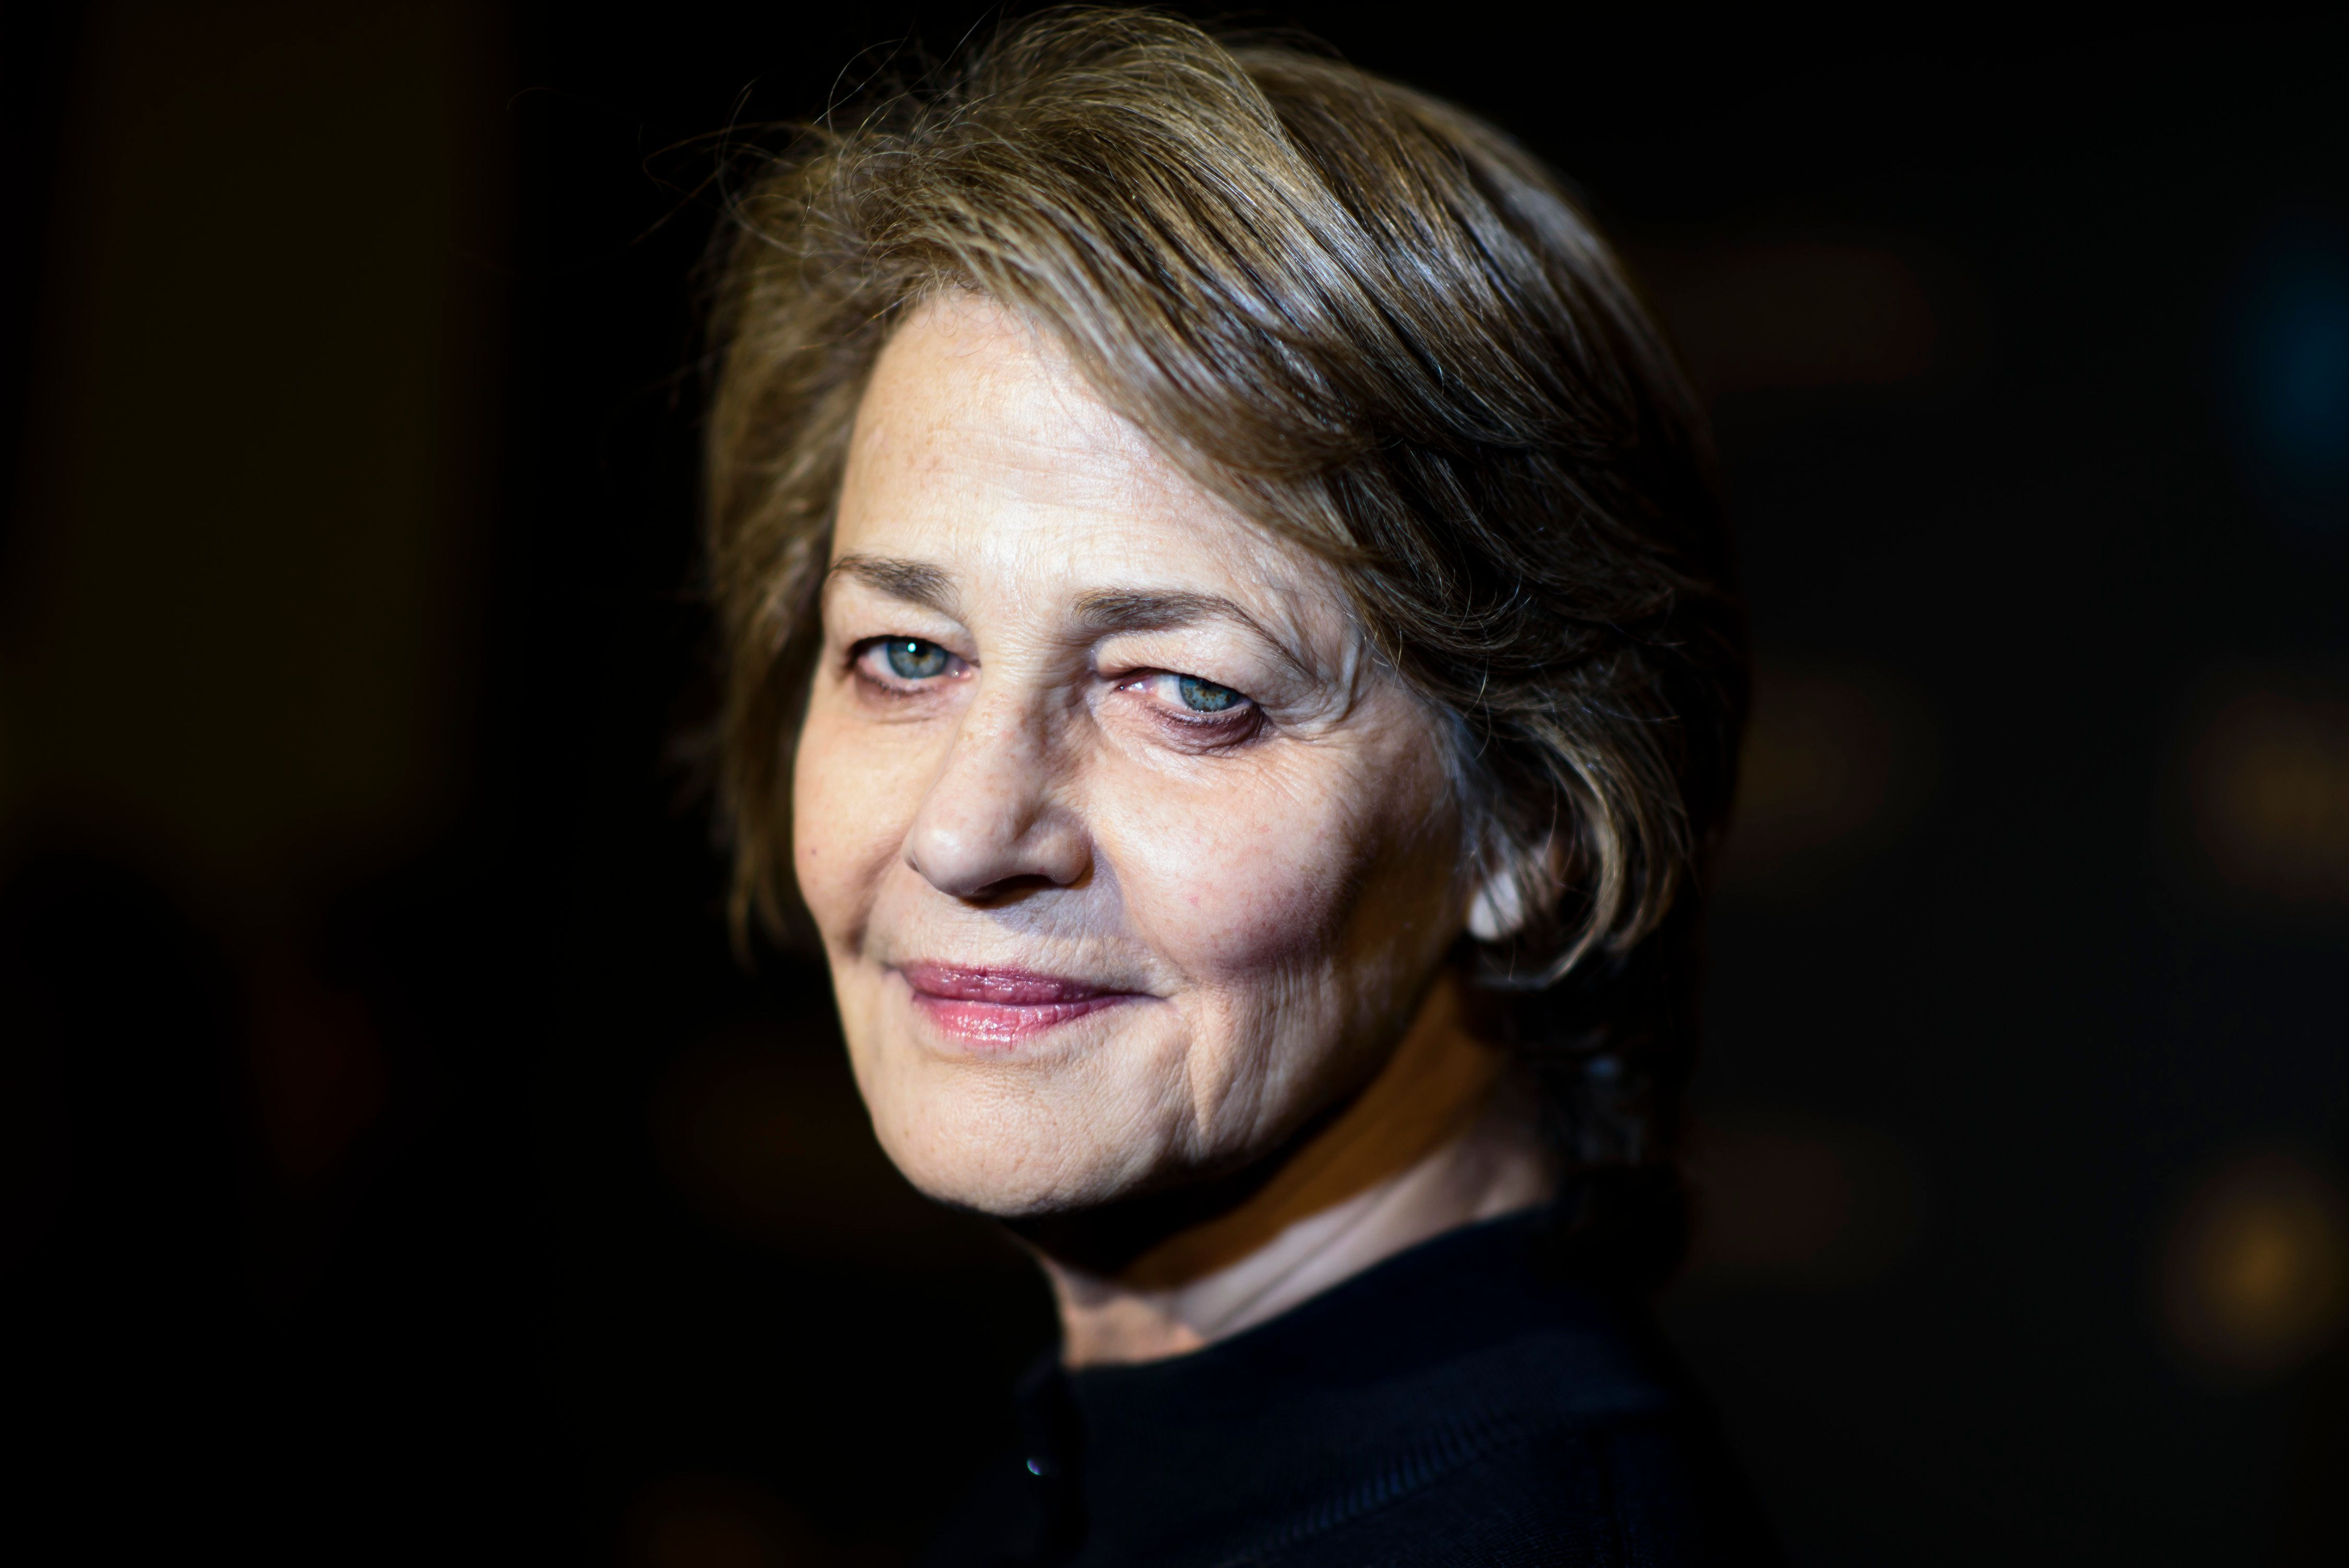 BERLIN, GERMANY - DECEMBER 11: Charlotte Rampling attends the EFA Filmgala Opening -  15th French Film Week Berlin on December 11, 2015 in Berlin, Germany.  (Photo by Clemens Bilan/Getty Images)